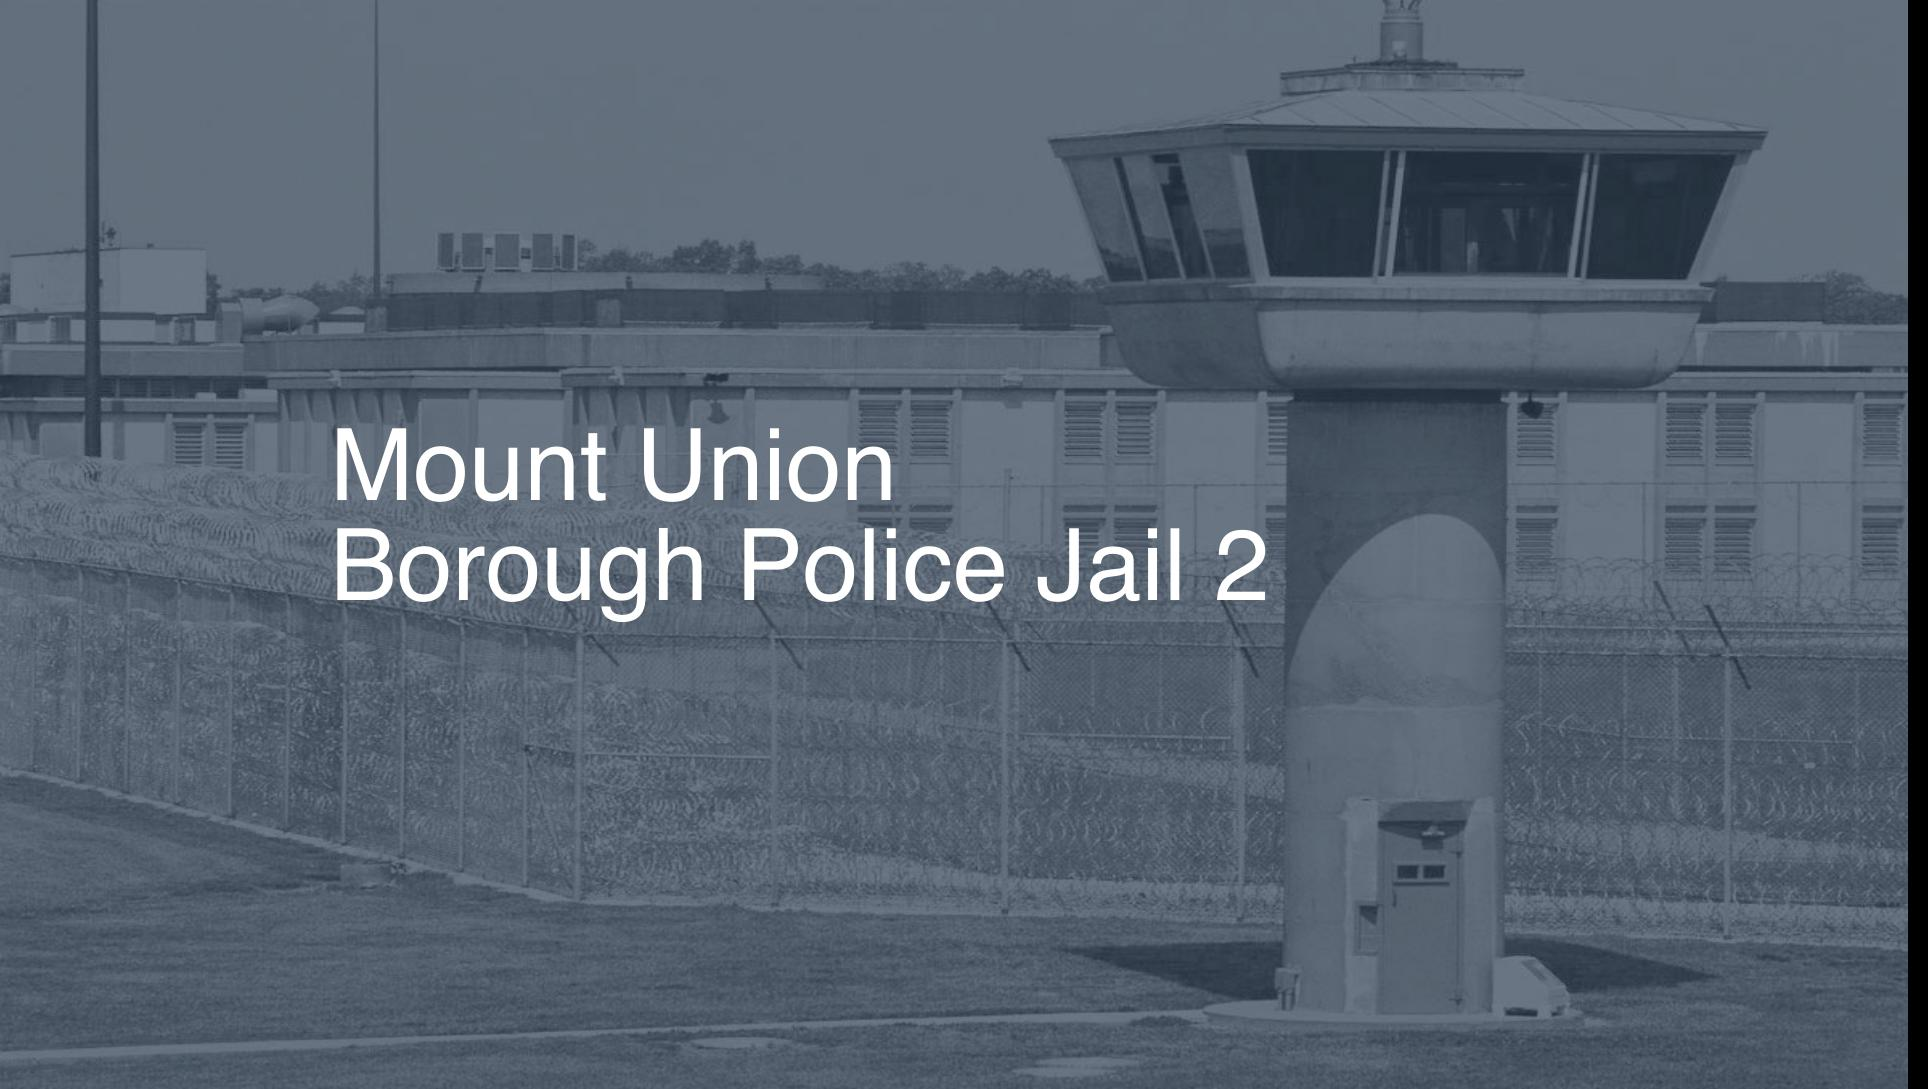 franklin county detention center pa - HD1928×1089